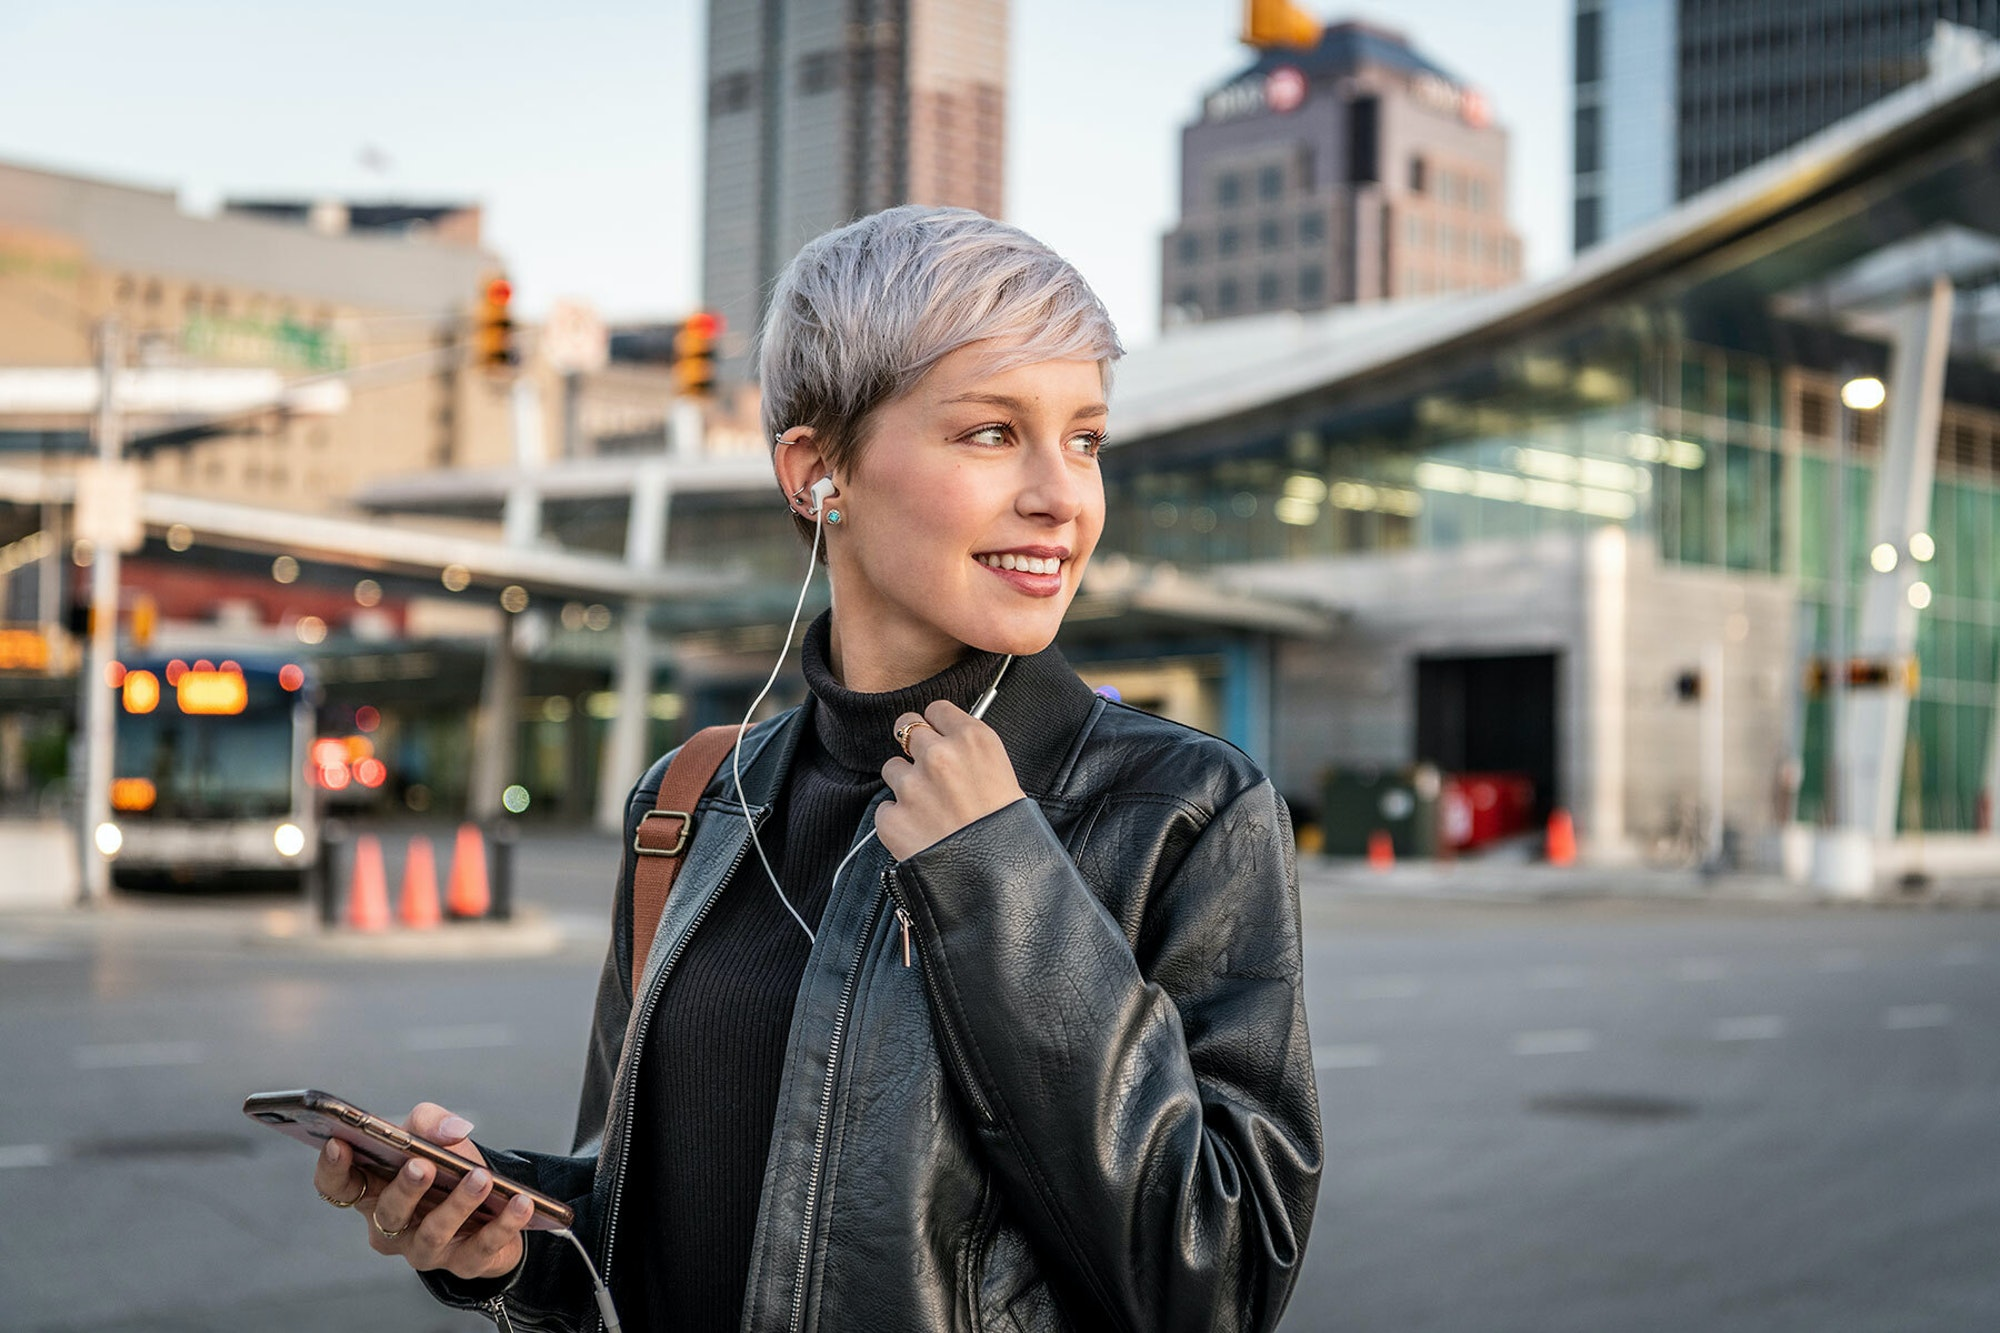 Klipsch wired headphones woman in a city music consumption